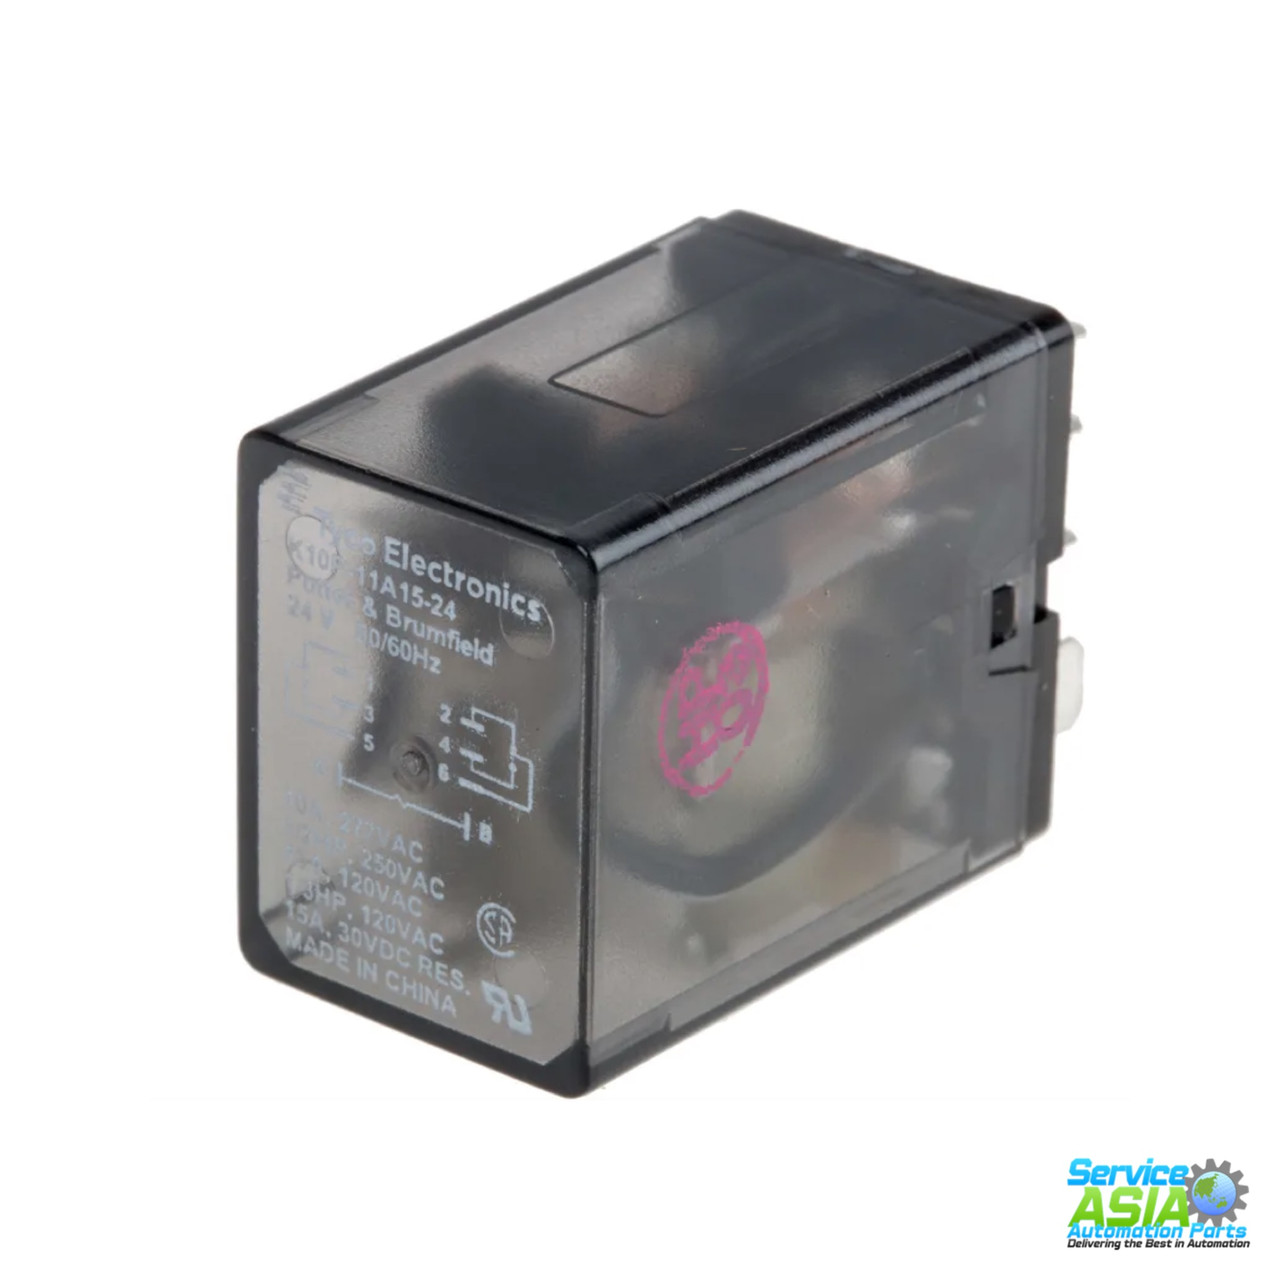 PLUG IN TE CONNECTIVITY//POTTER /& BRUMFIELD K10P-11A15-24 POWER RELAY 24VAC DPDT 15A